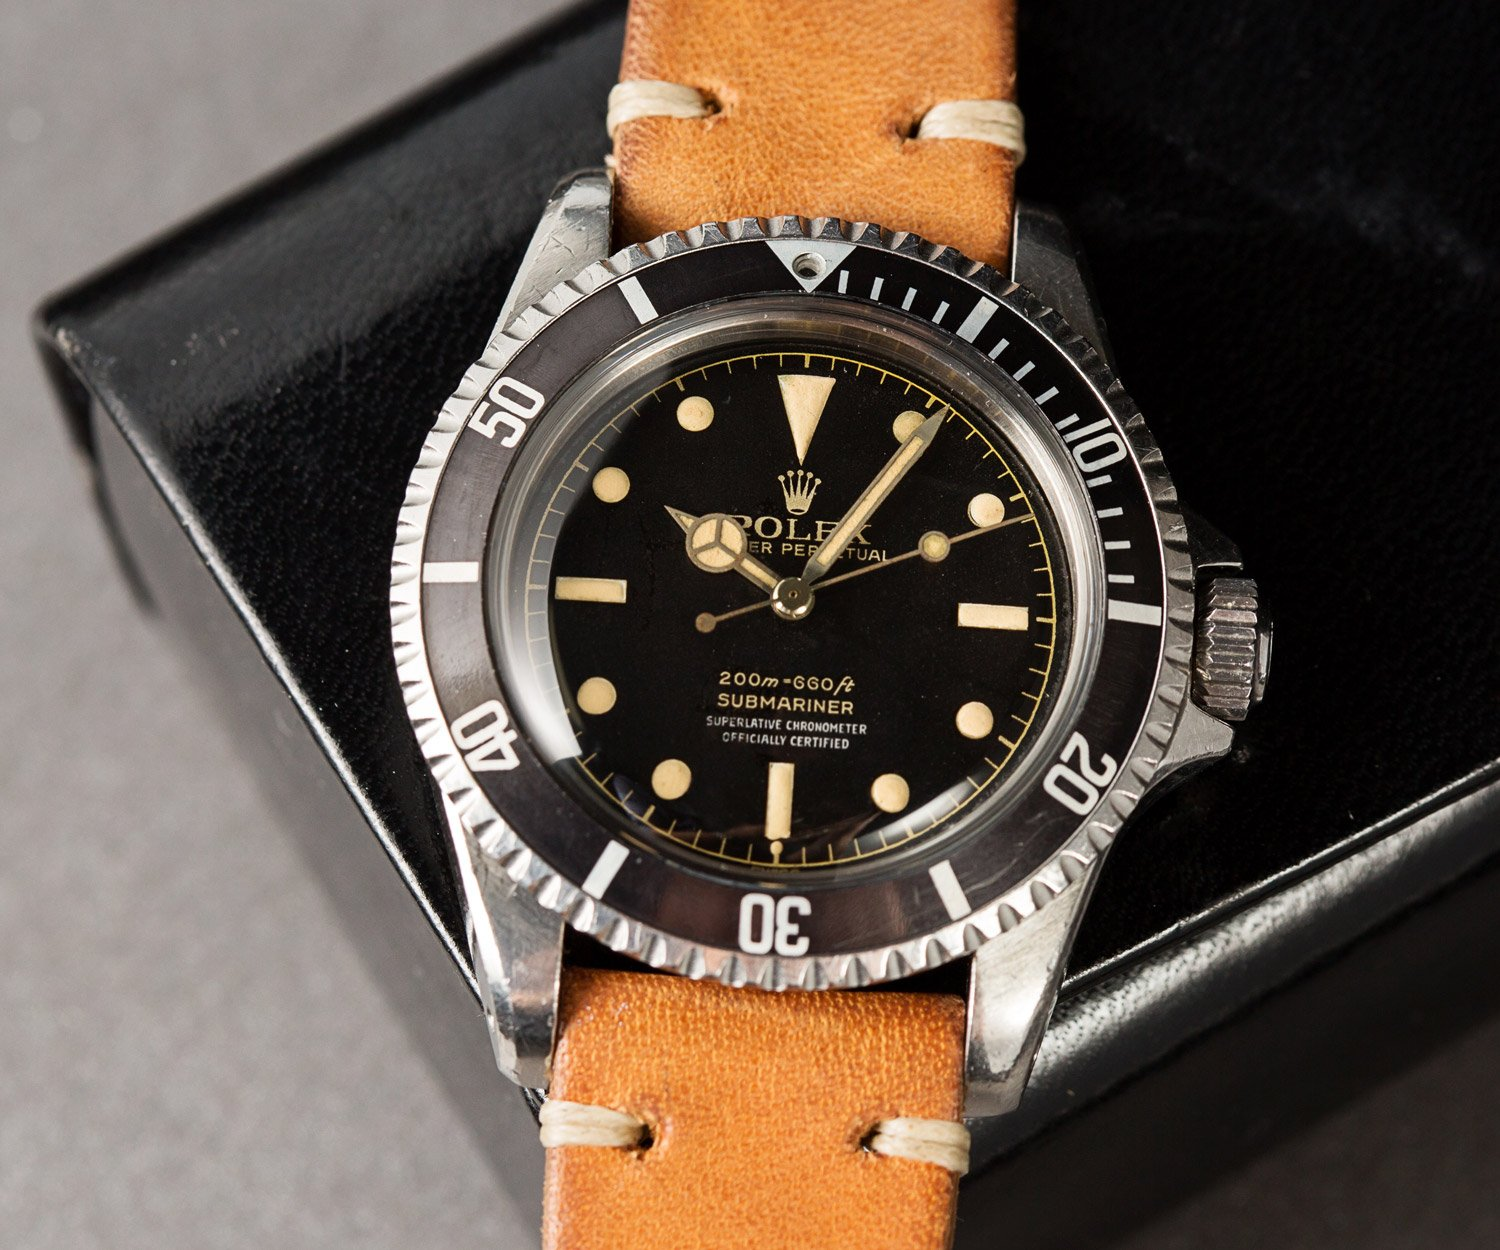 200m to feet Rolex Submariner 5512 meters first